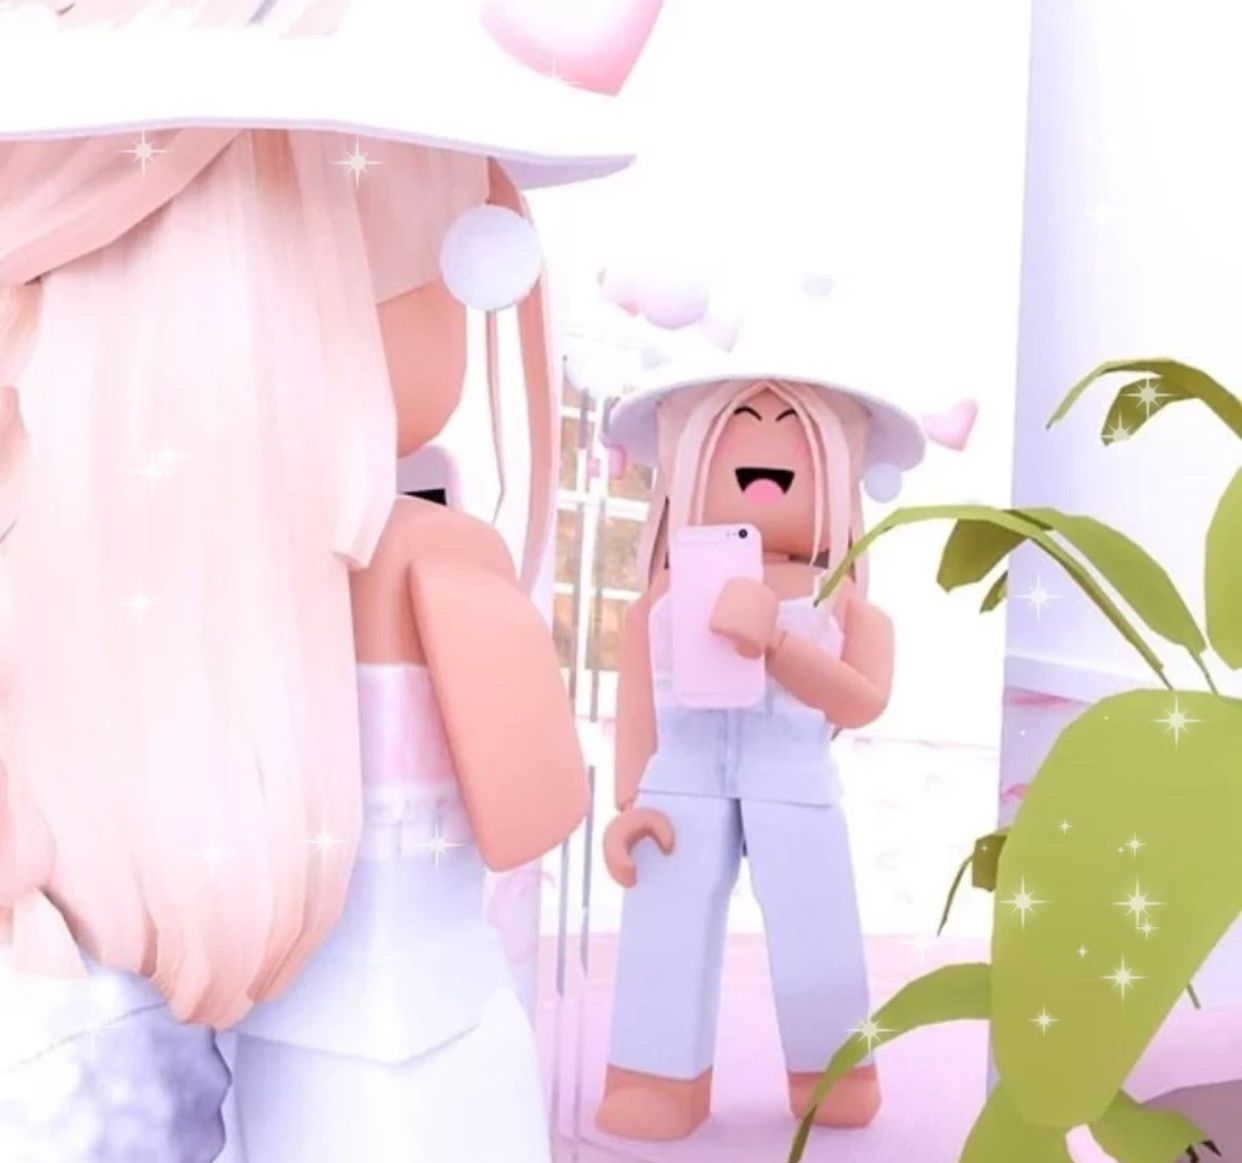 Pin By Rosario Rodriguez On Aesthetic Roblox In 2020 Cute Tumblr Wallpaper Roblox Pictures Roblox Animation